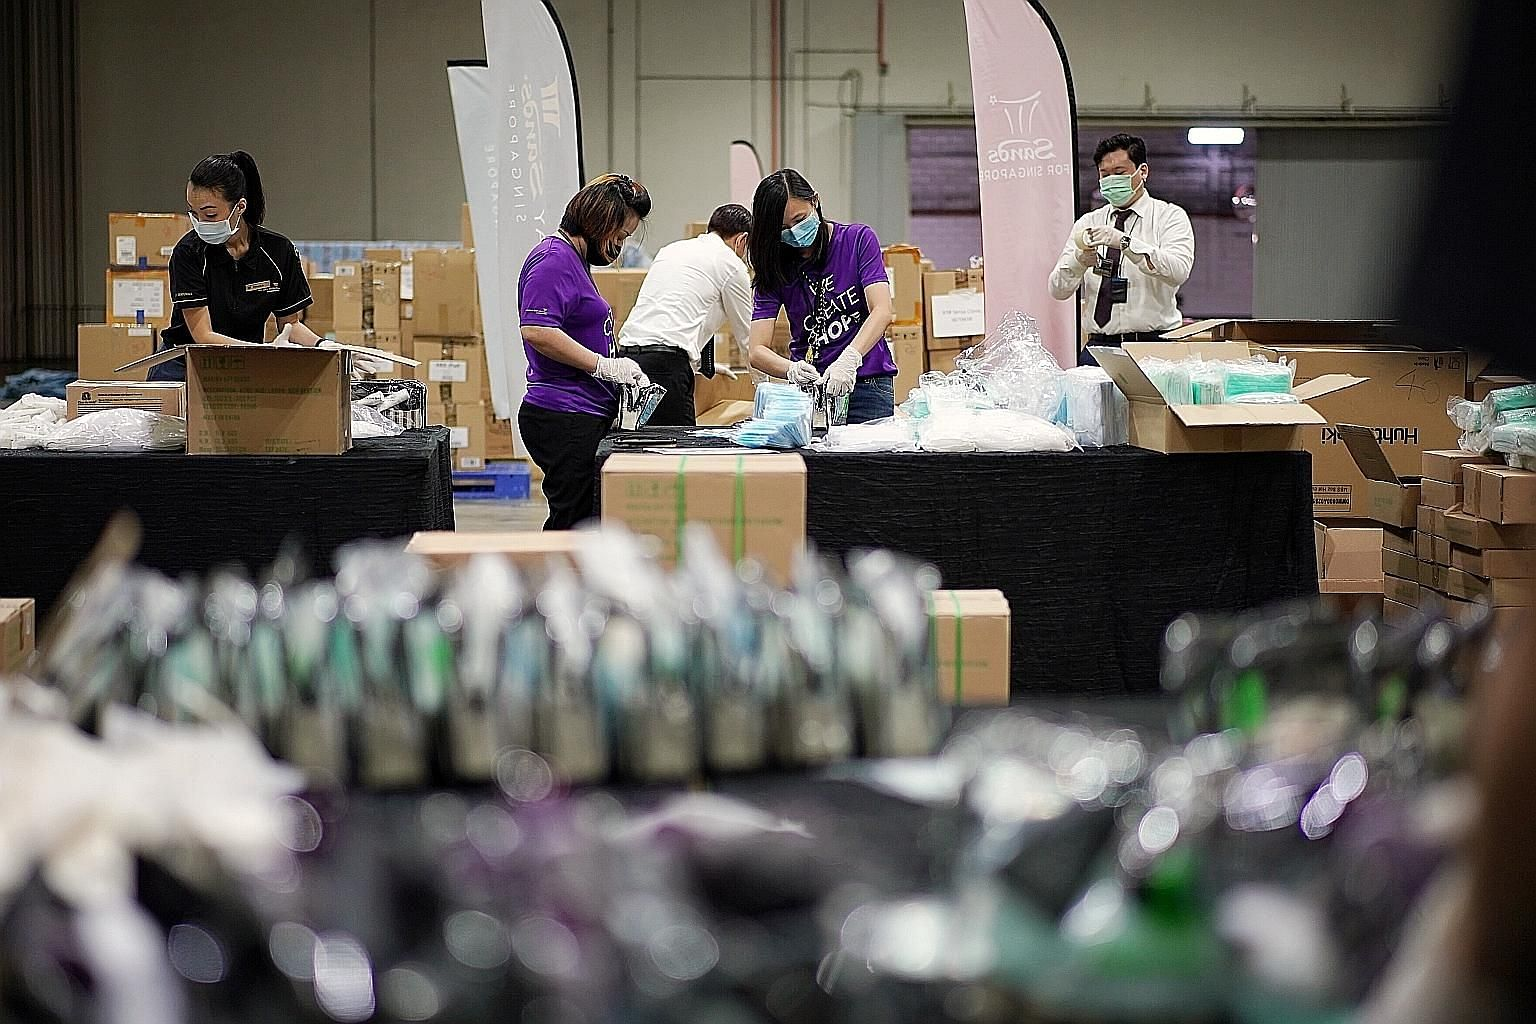 Marina Bay Sands (MBS) staff packing care kits yesterday at one of the halls in Sands Expo and Convention Centre. More than 300 MBS staff from more than 40 departments - including (from far left) assistant manager Veronica Lim, 33, senior administrat